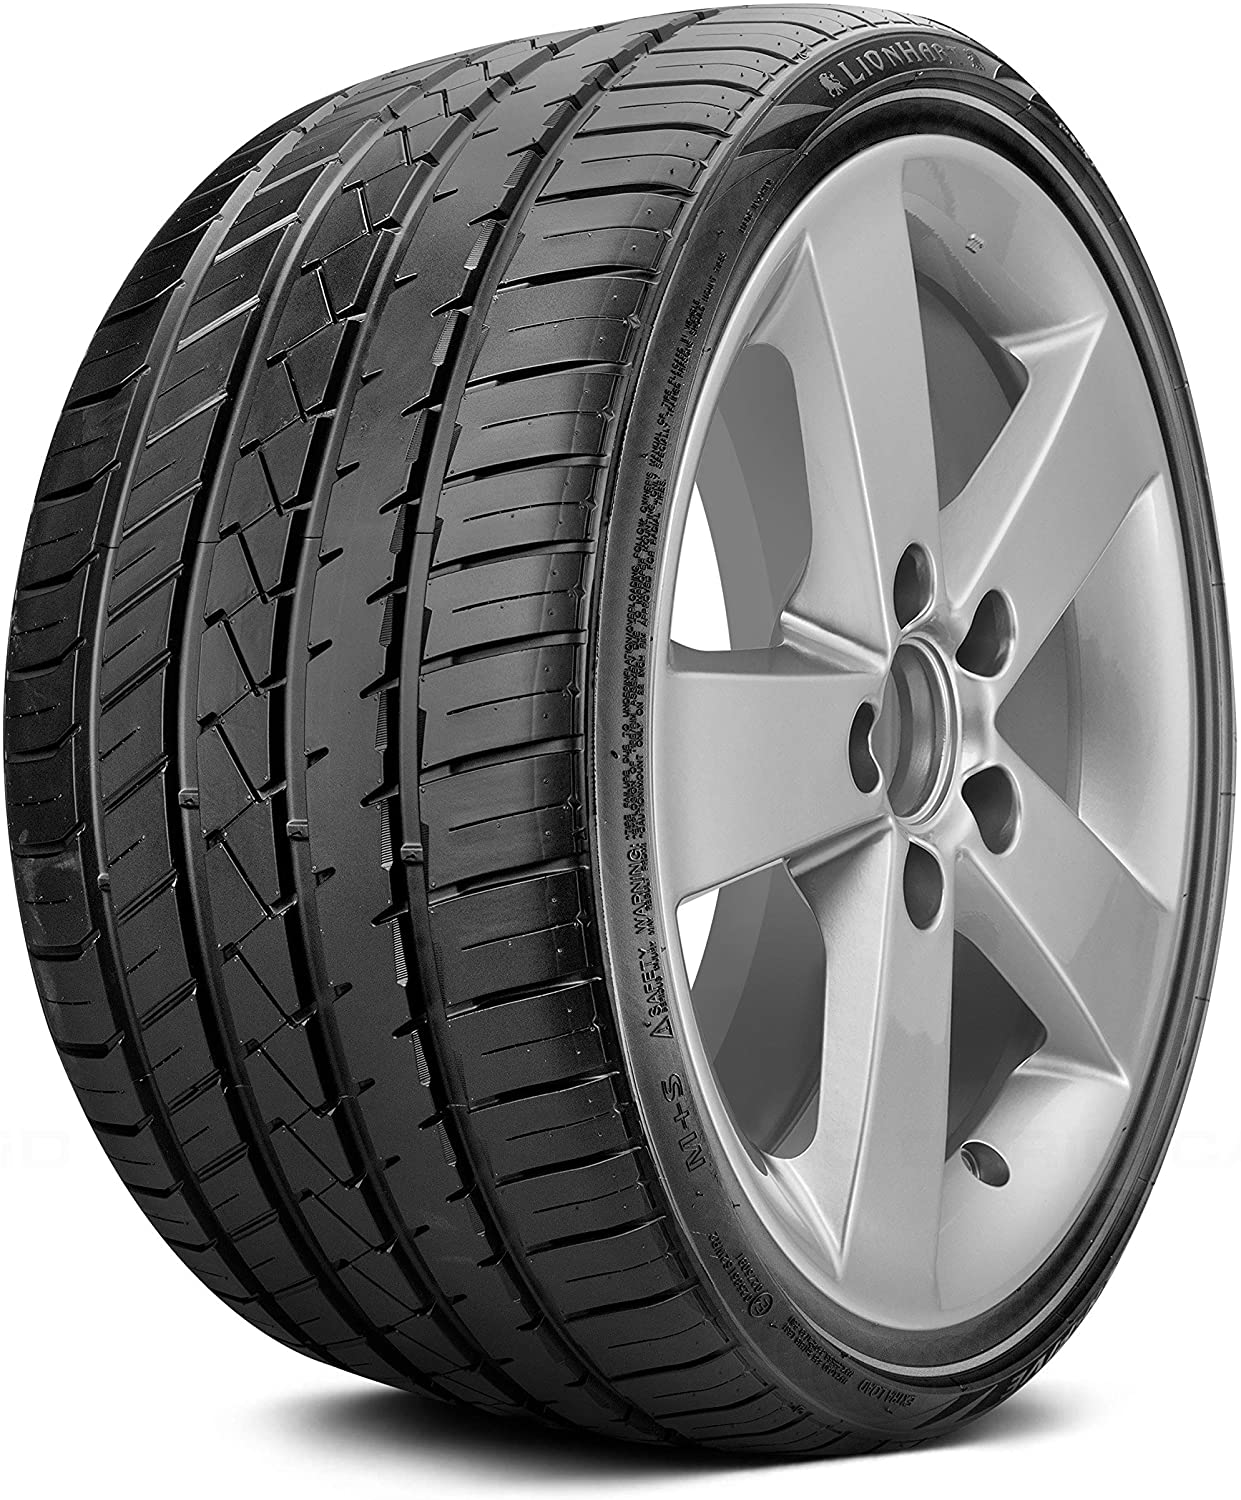 Lionhart LH-FIVE Performance Radial Tire - 275/35R20 102W